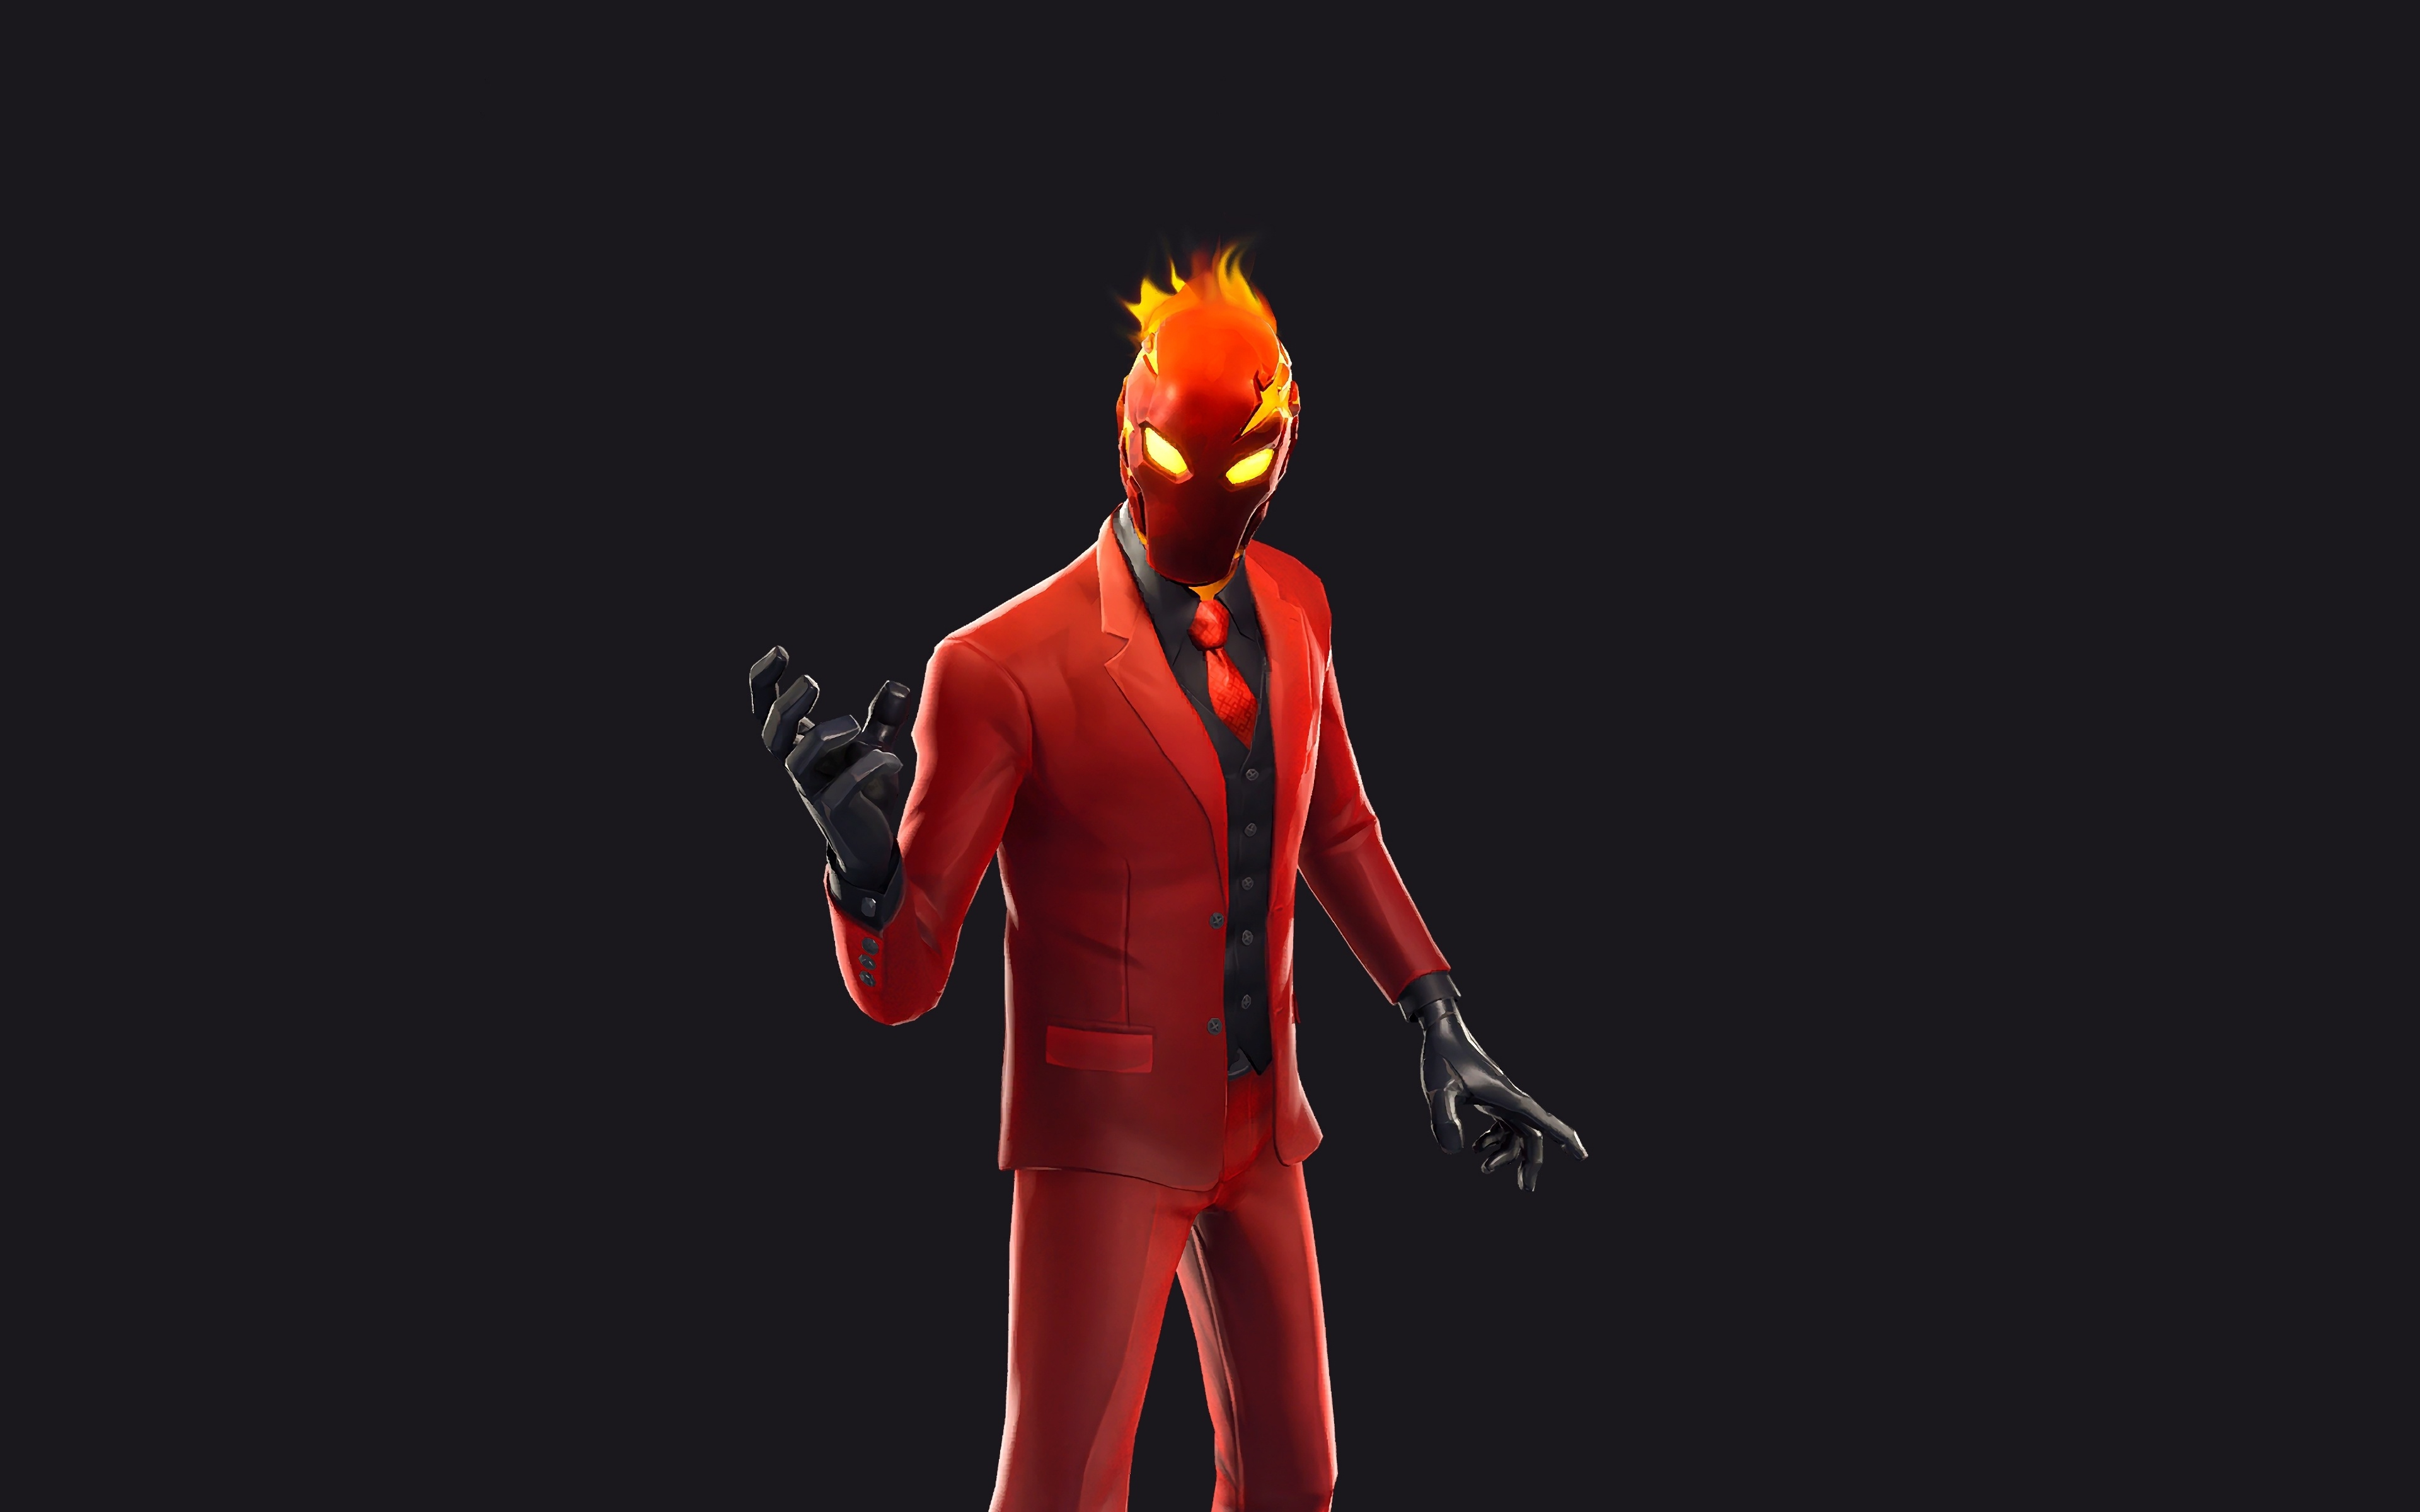 Download 3840x2400 Wallpaper Game 2019 Red Suit Inferno